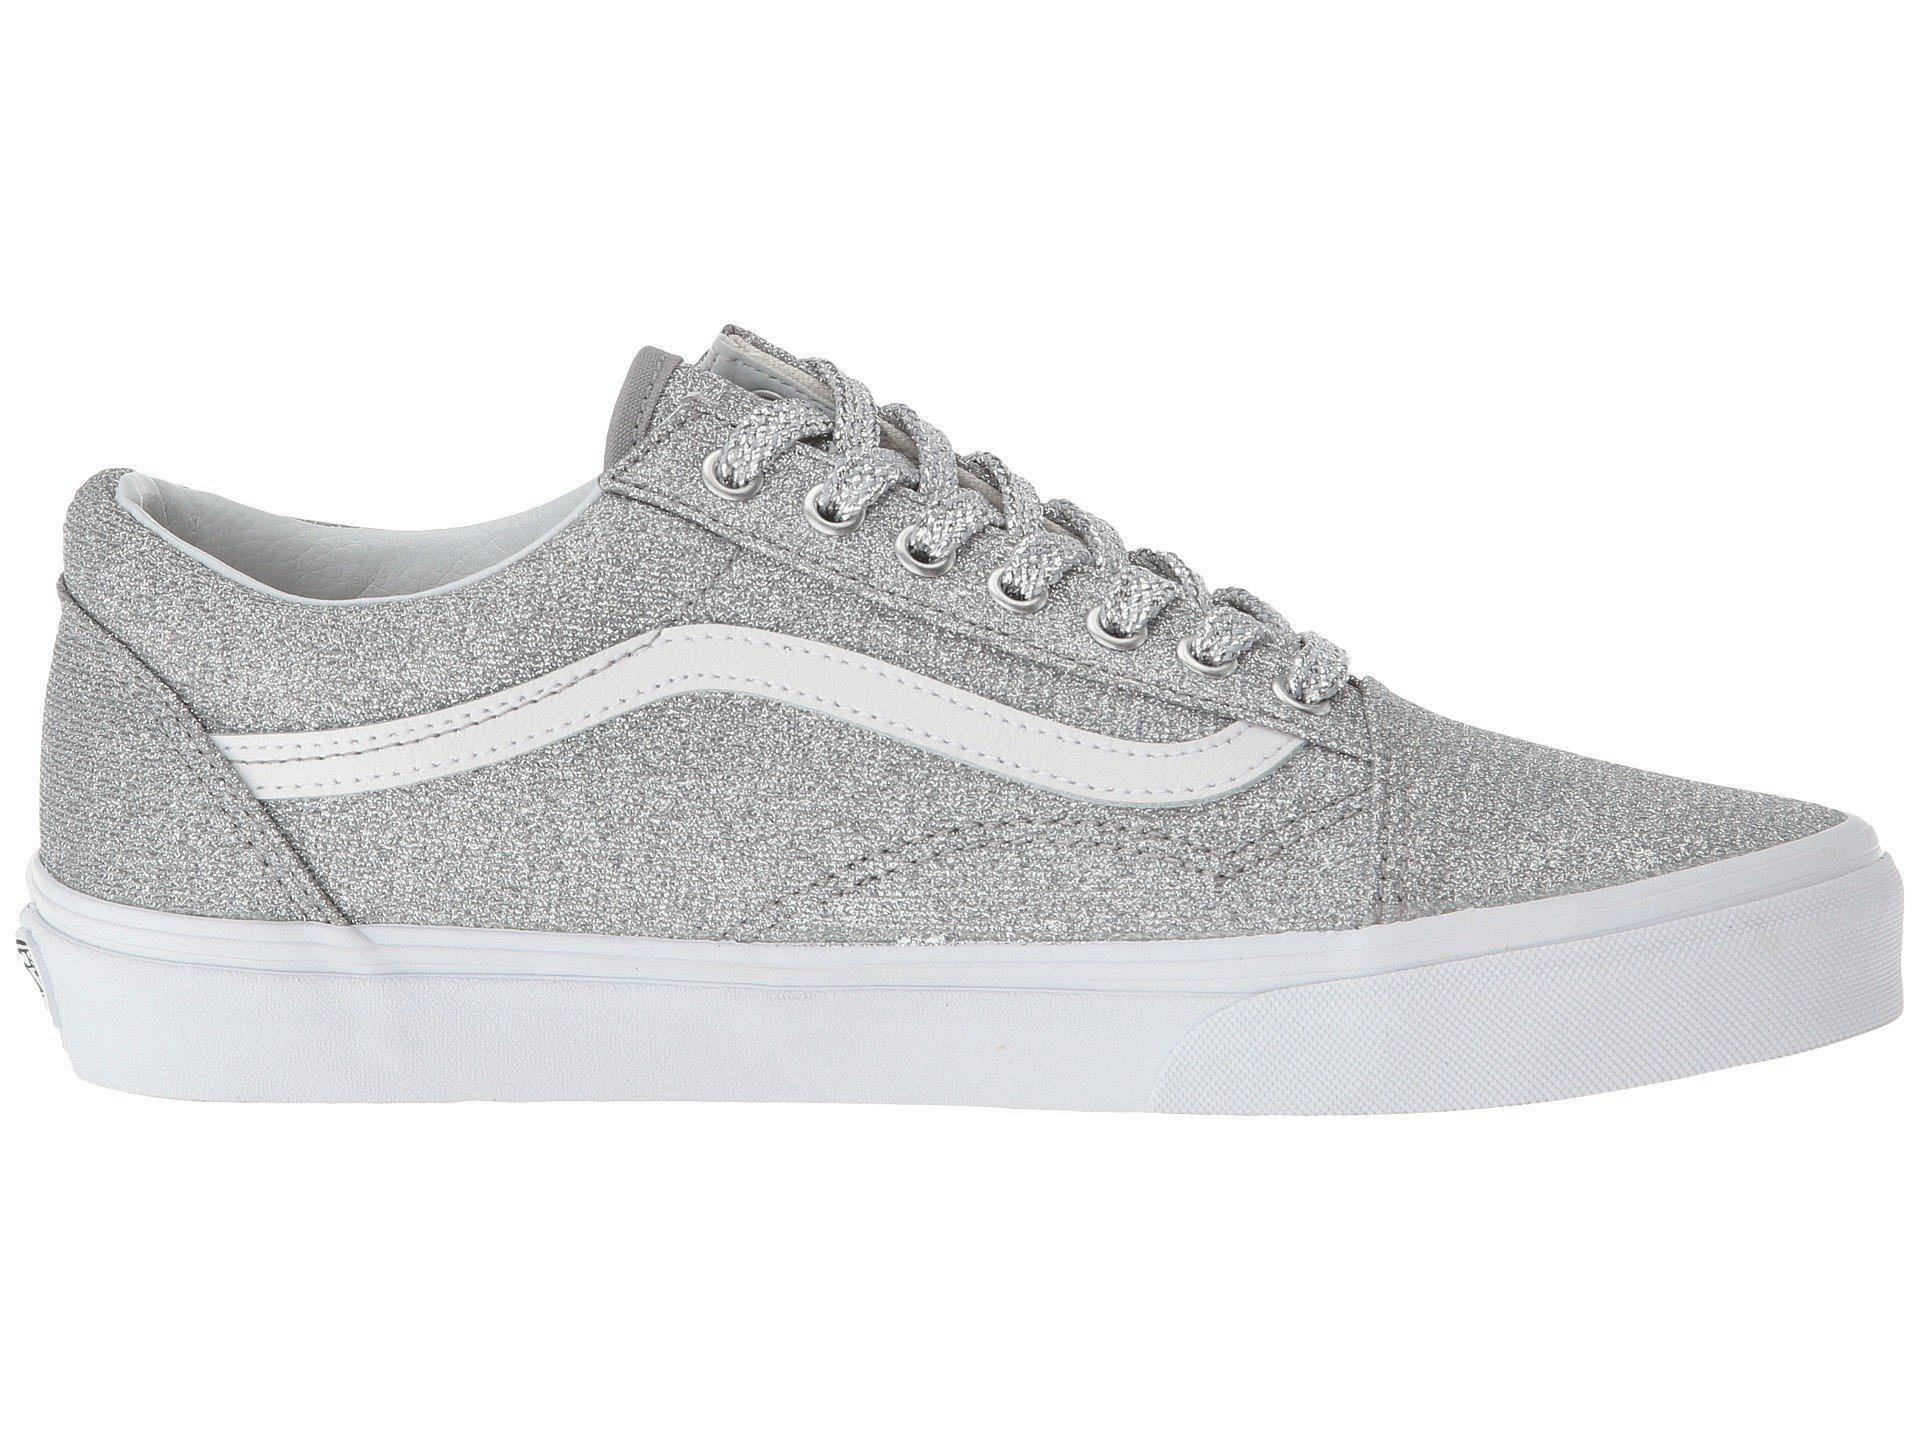 Vans - Multicolor Lurex Glitter Old Skool - Lyst. View fullscreen 11b2383dc